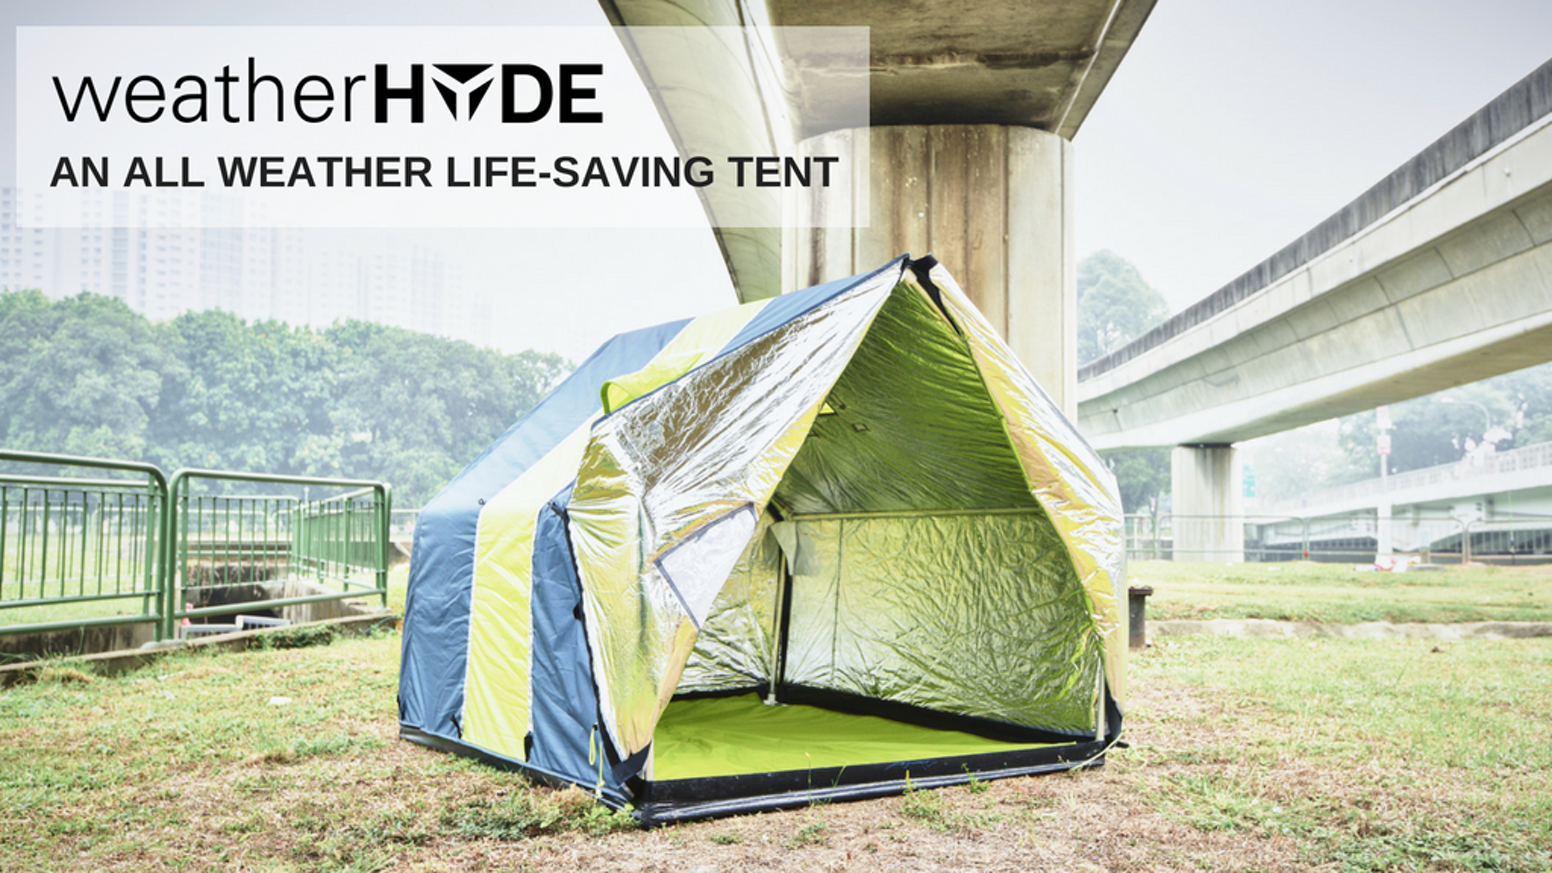 The world's only reversible all season family tent designed to save the lives of homeless and vulnerable living in extreme weather.